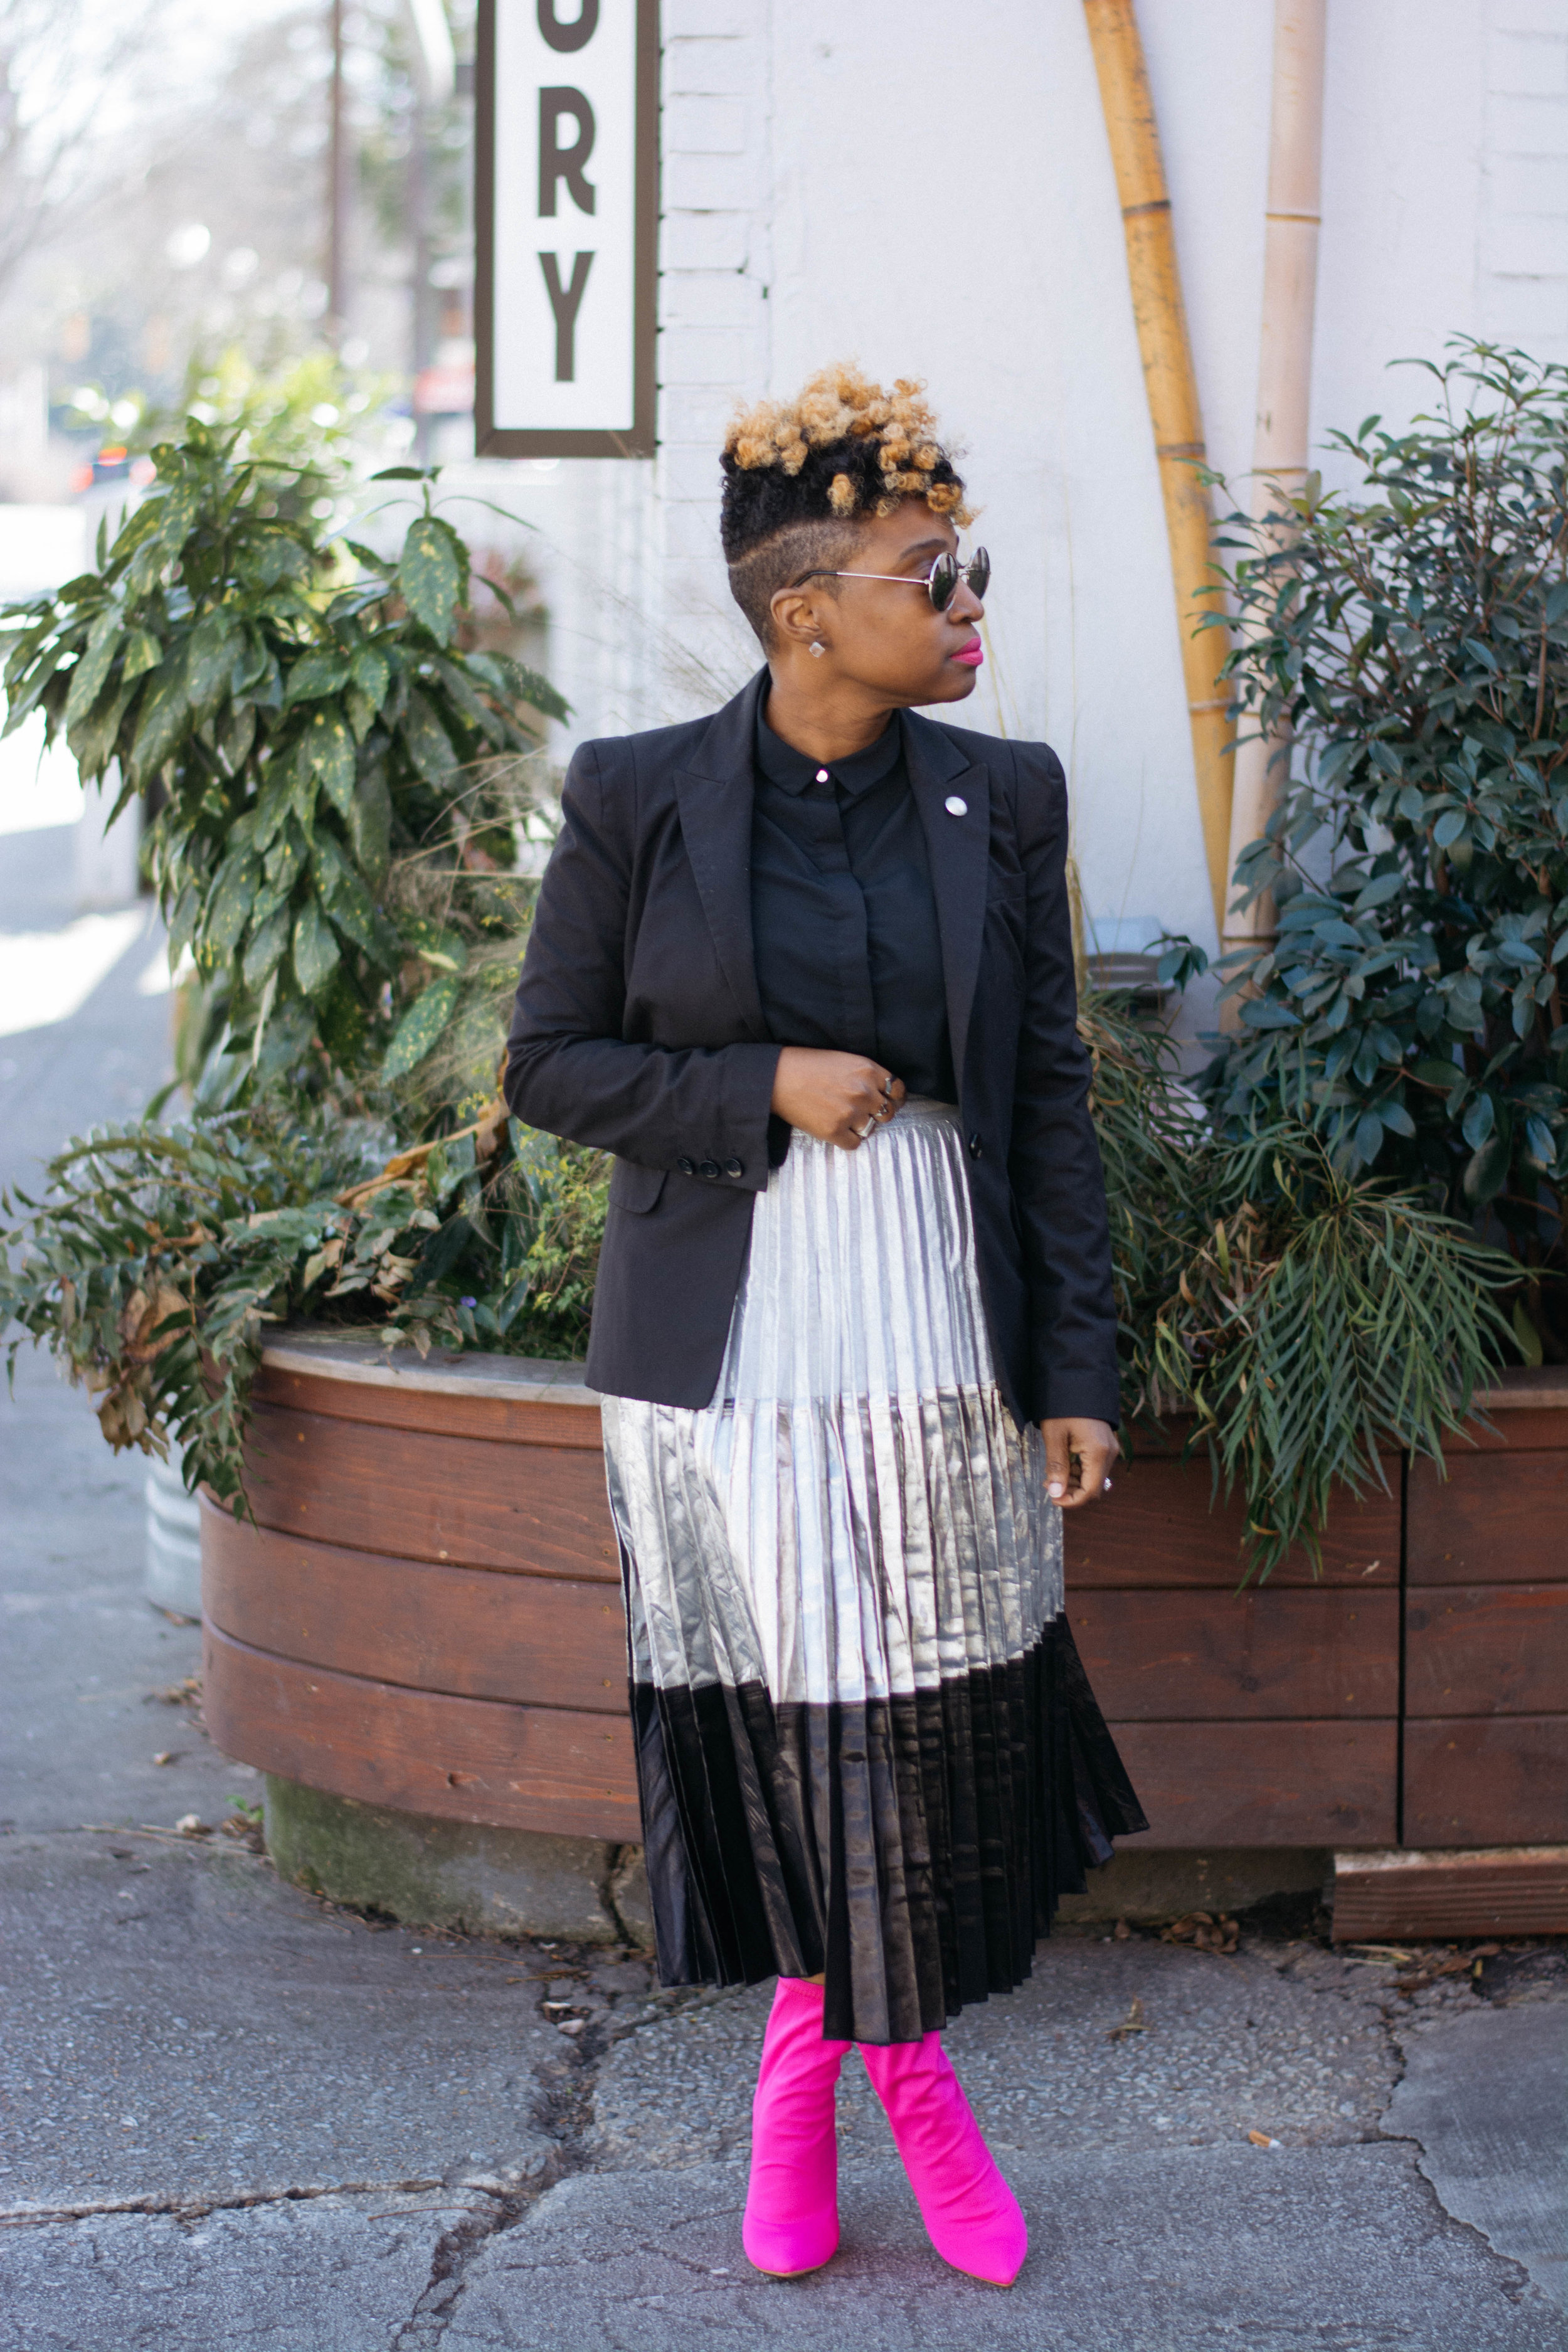 The Easiest Way To Style A Black & White Outfit